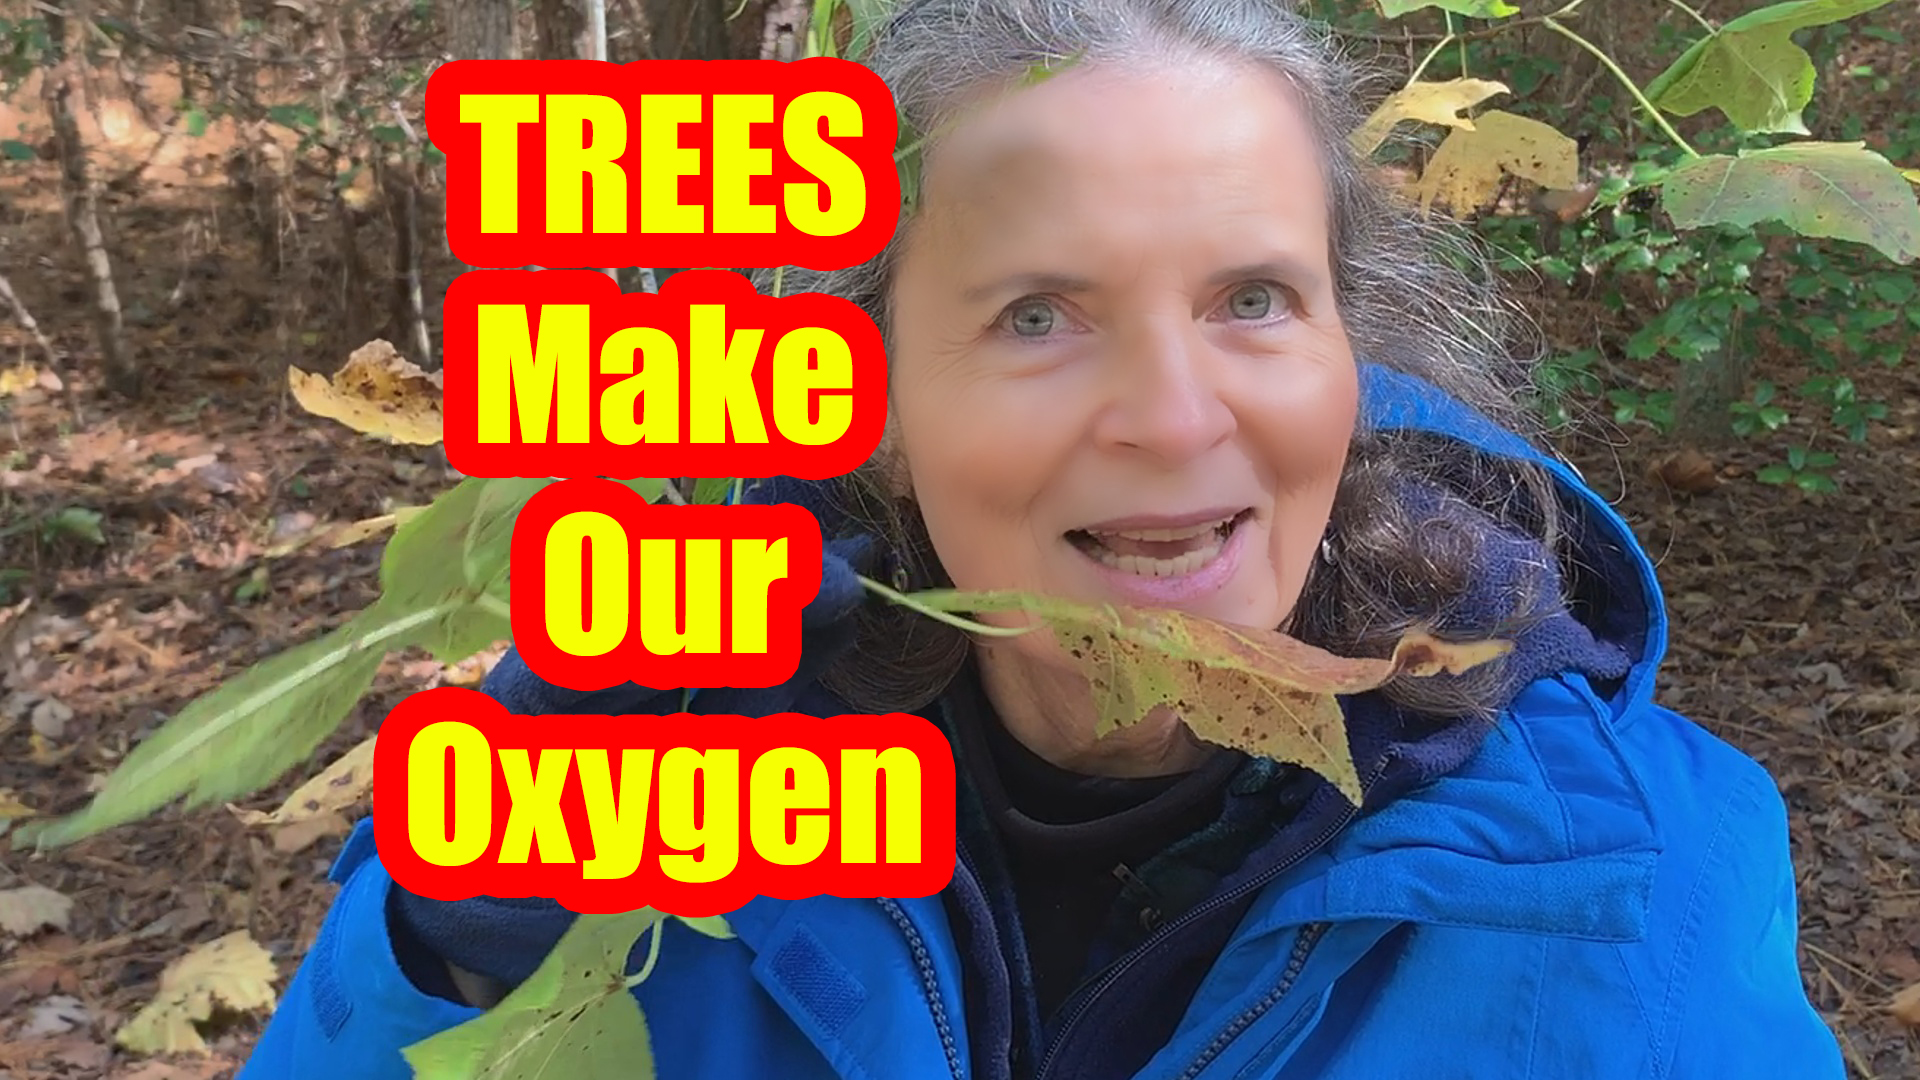 We Need Oxygen Made by Trees